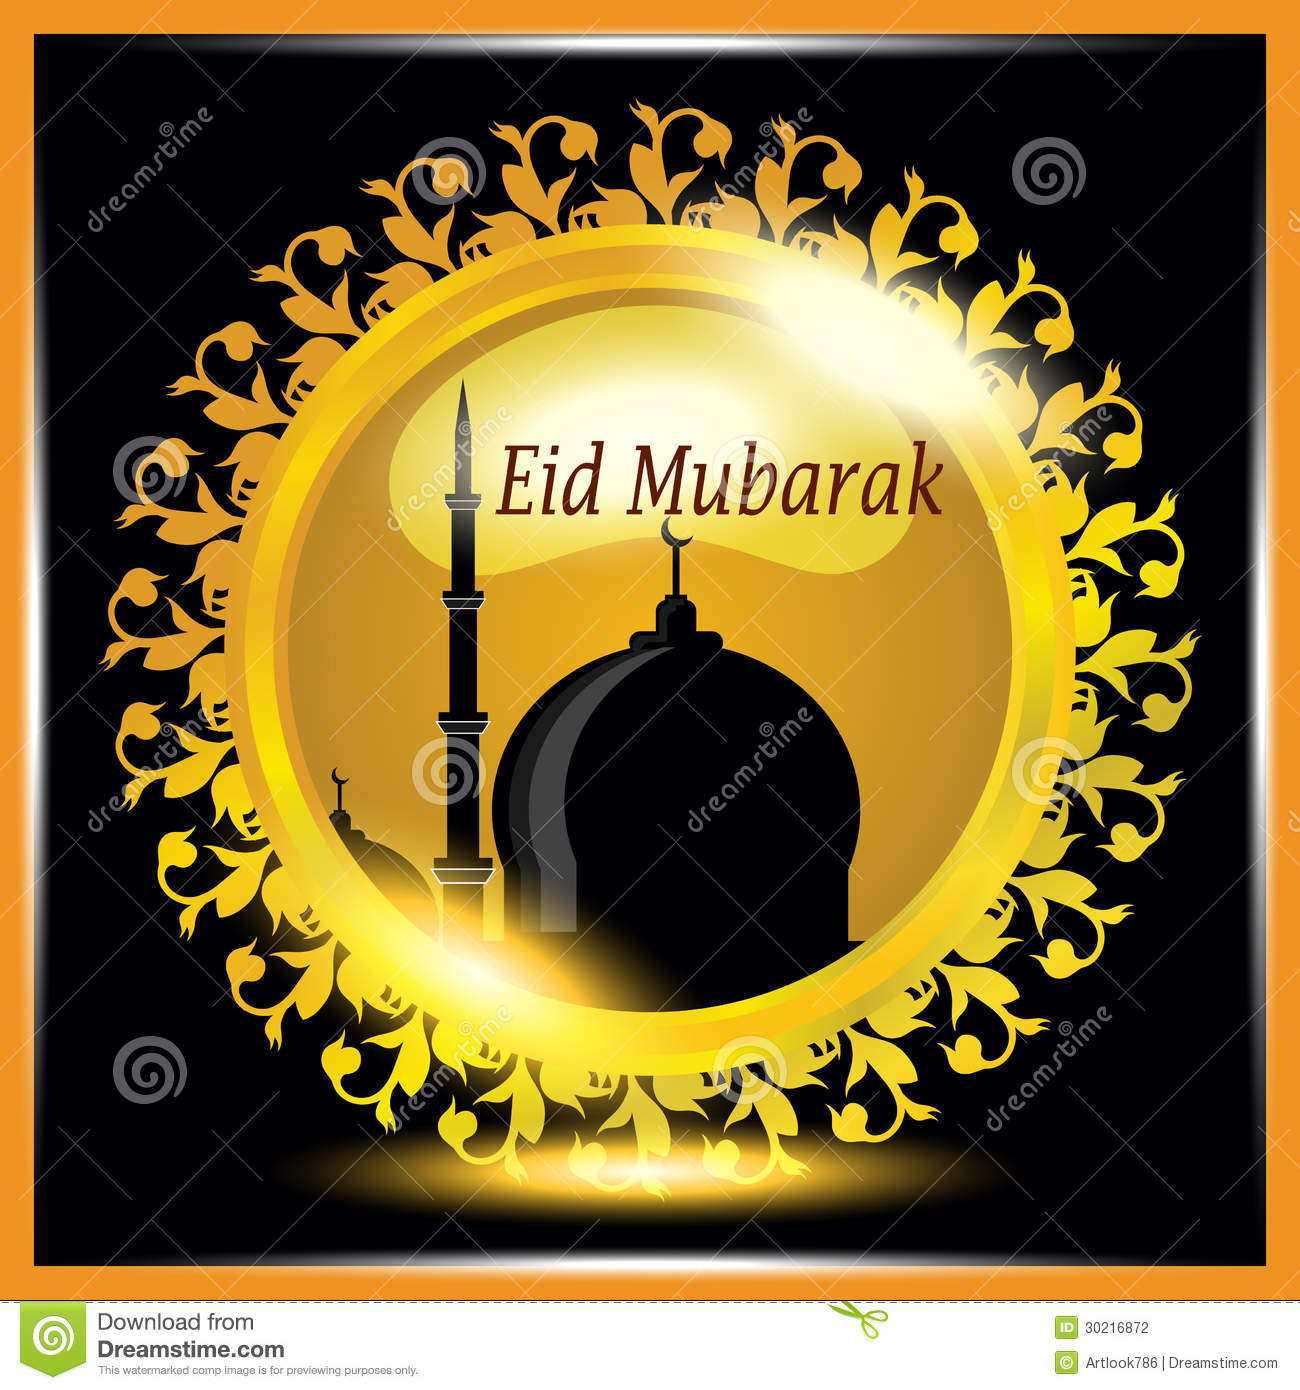 Islamic greetings card for eid mubarak stock illustration islamic greetings card for eid mubarak m4hsunfo